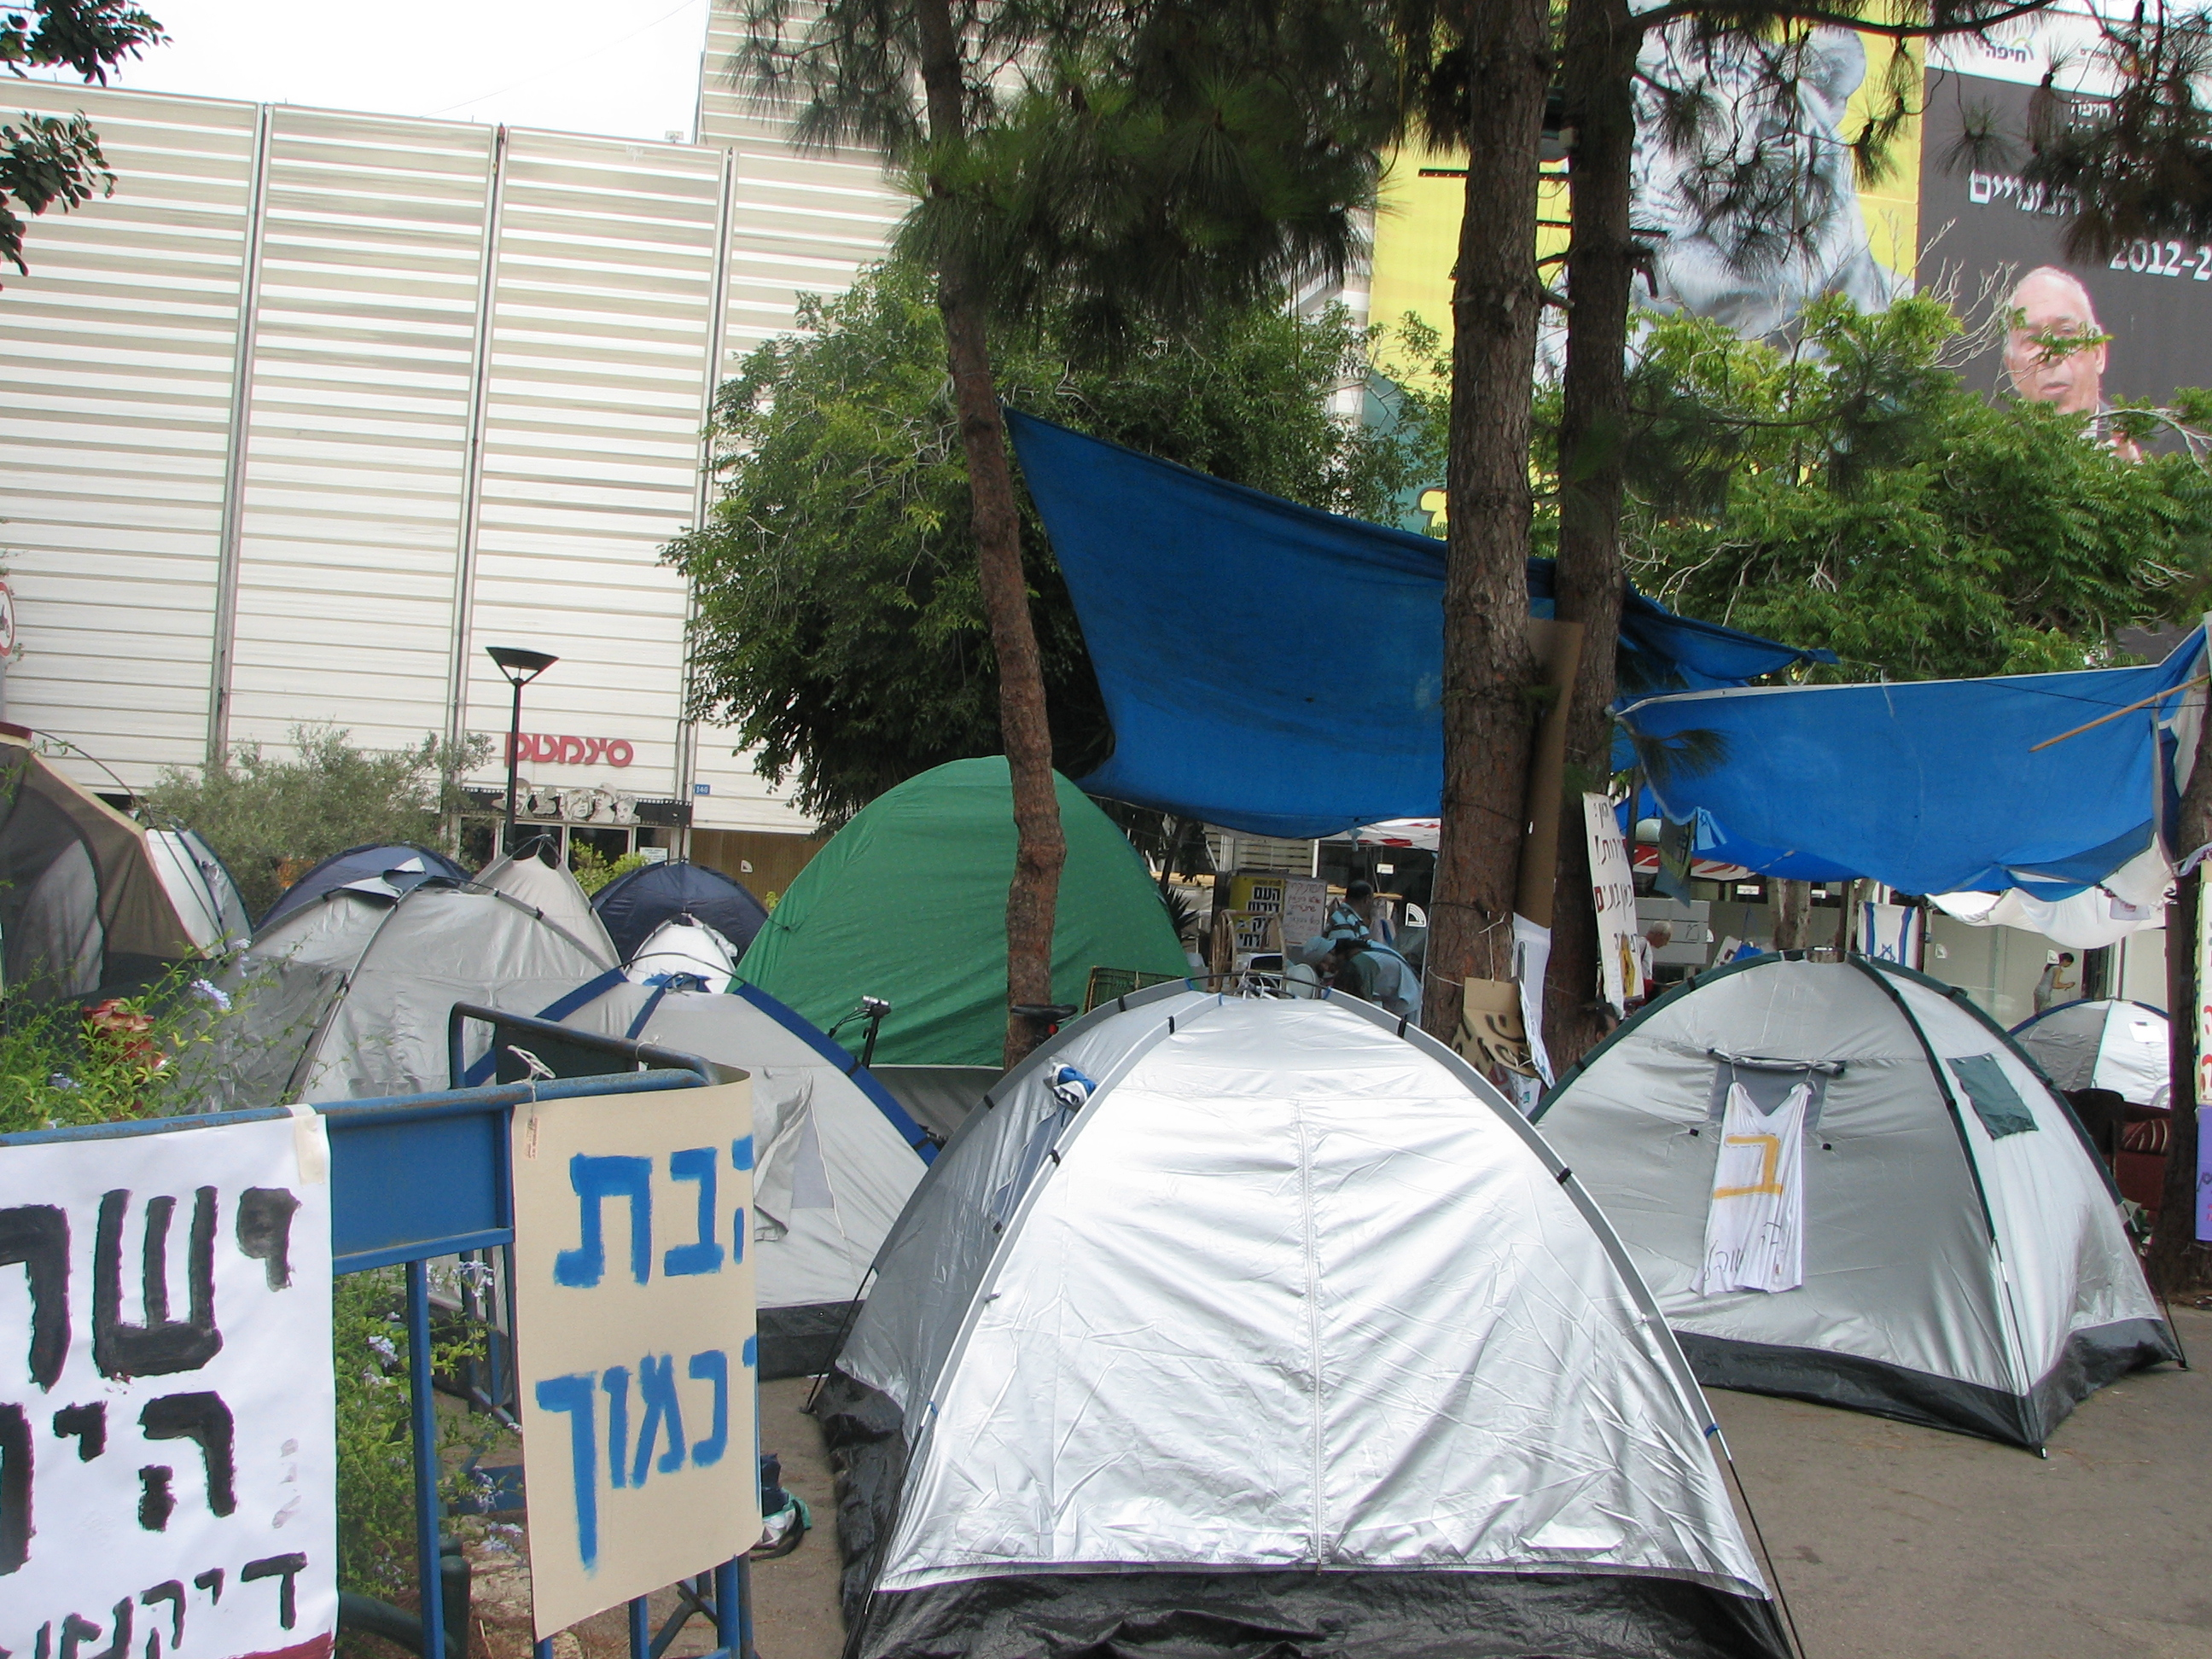 Protests against high renting prices in Haifa (Credit: WIKIMEDIA/HANAY)